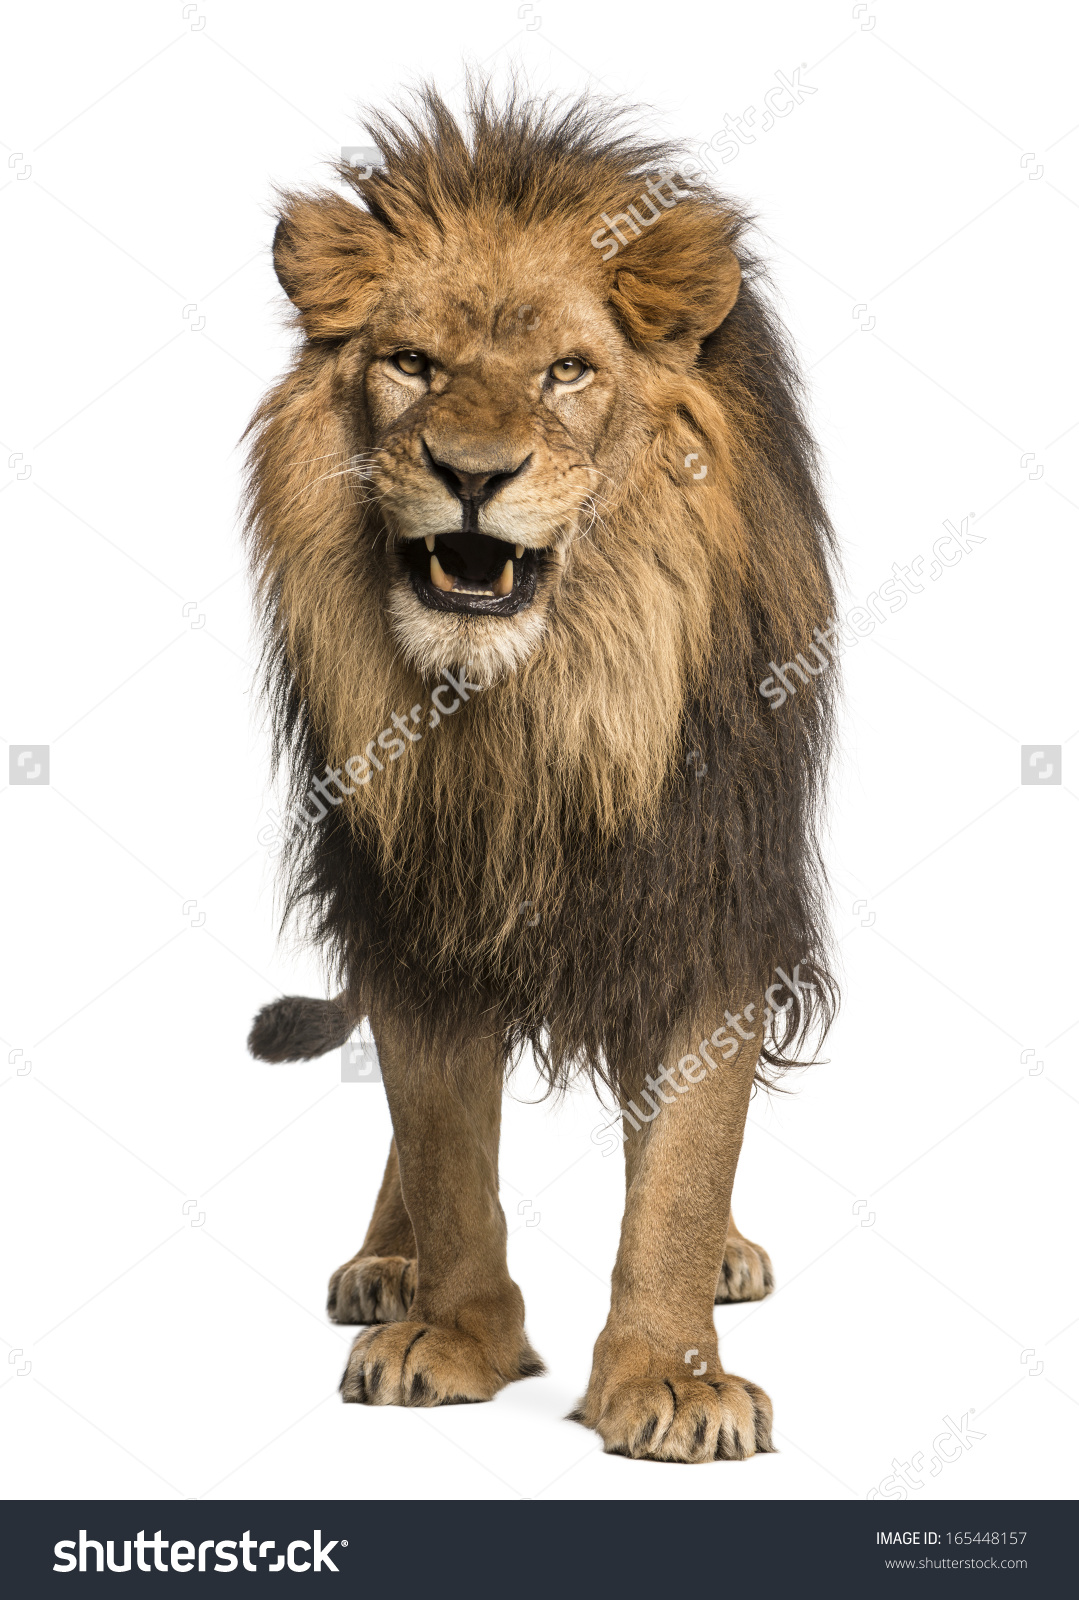 Front view lion body clipart.